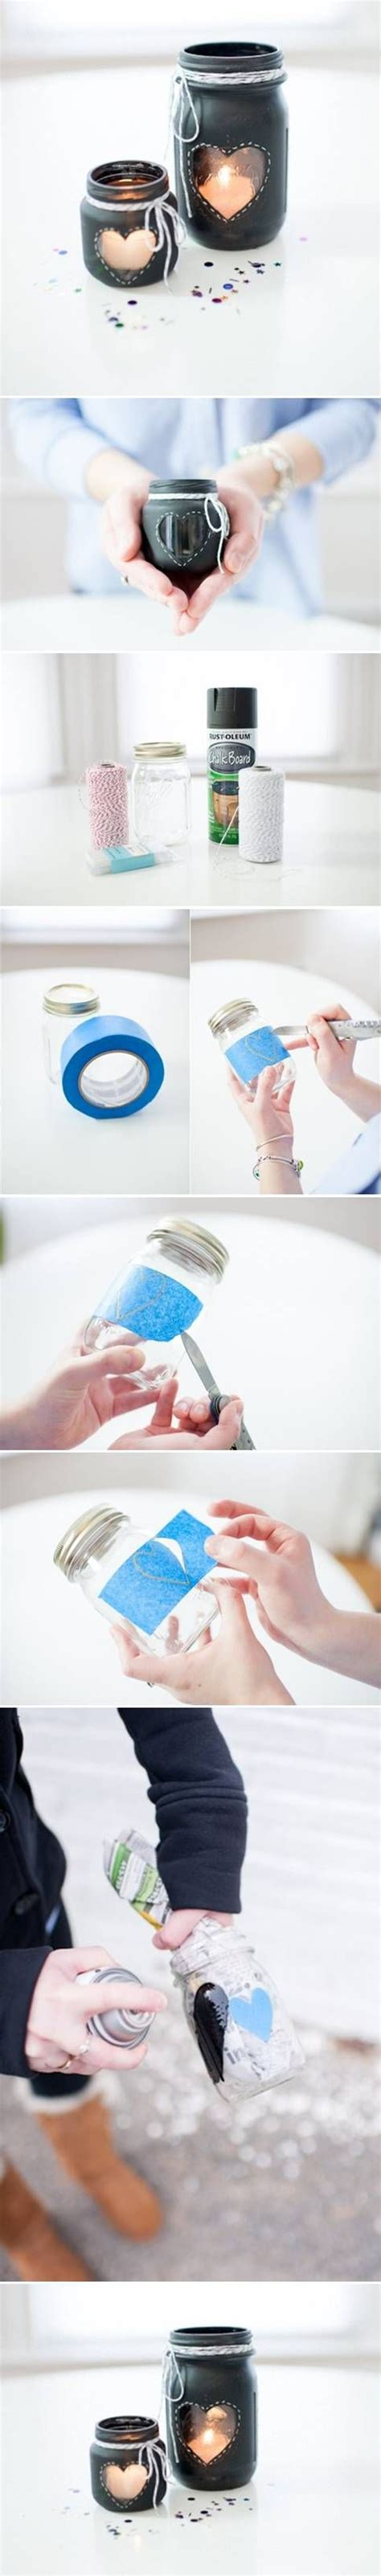 Glass Candle Holders Diy Perserving Jar Satine Paint by Diy Glass Jar Candlestick This Is Really And With A